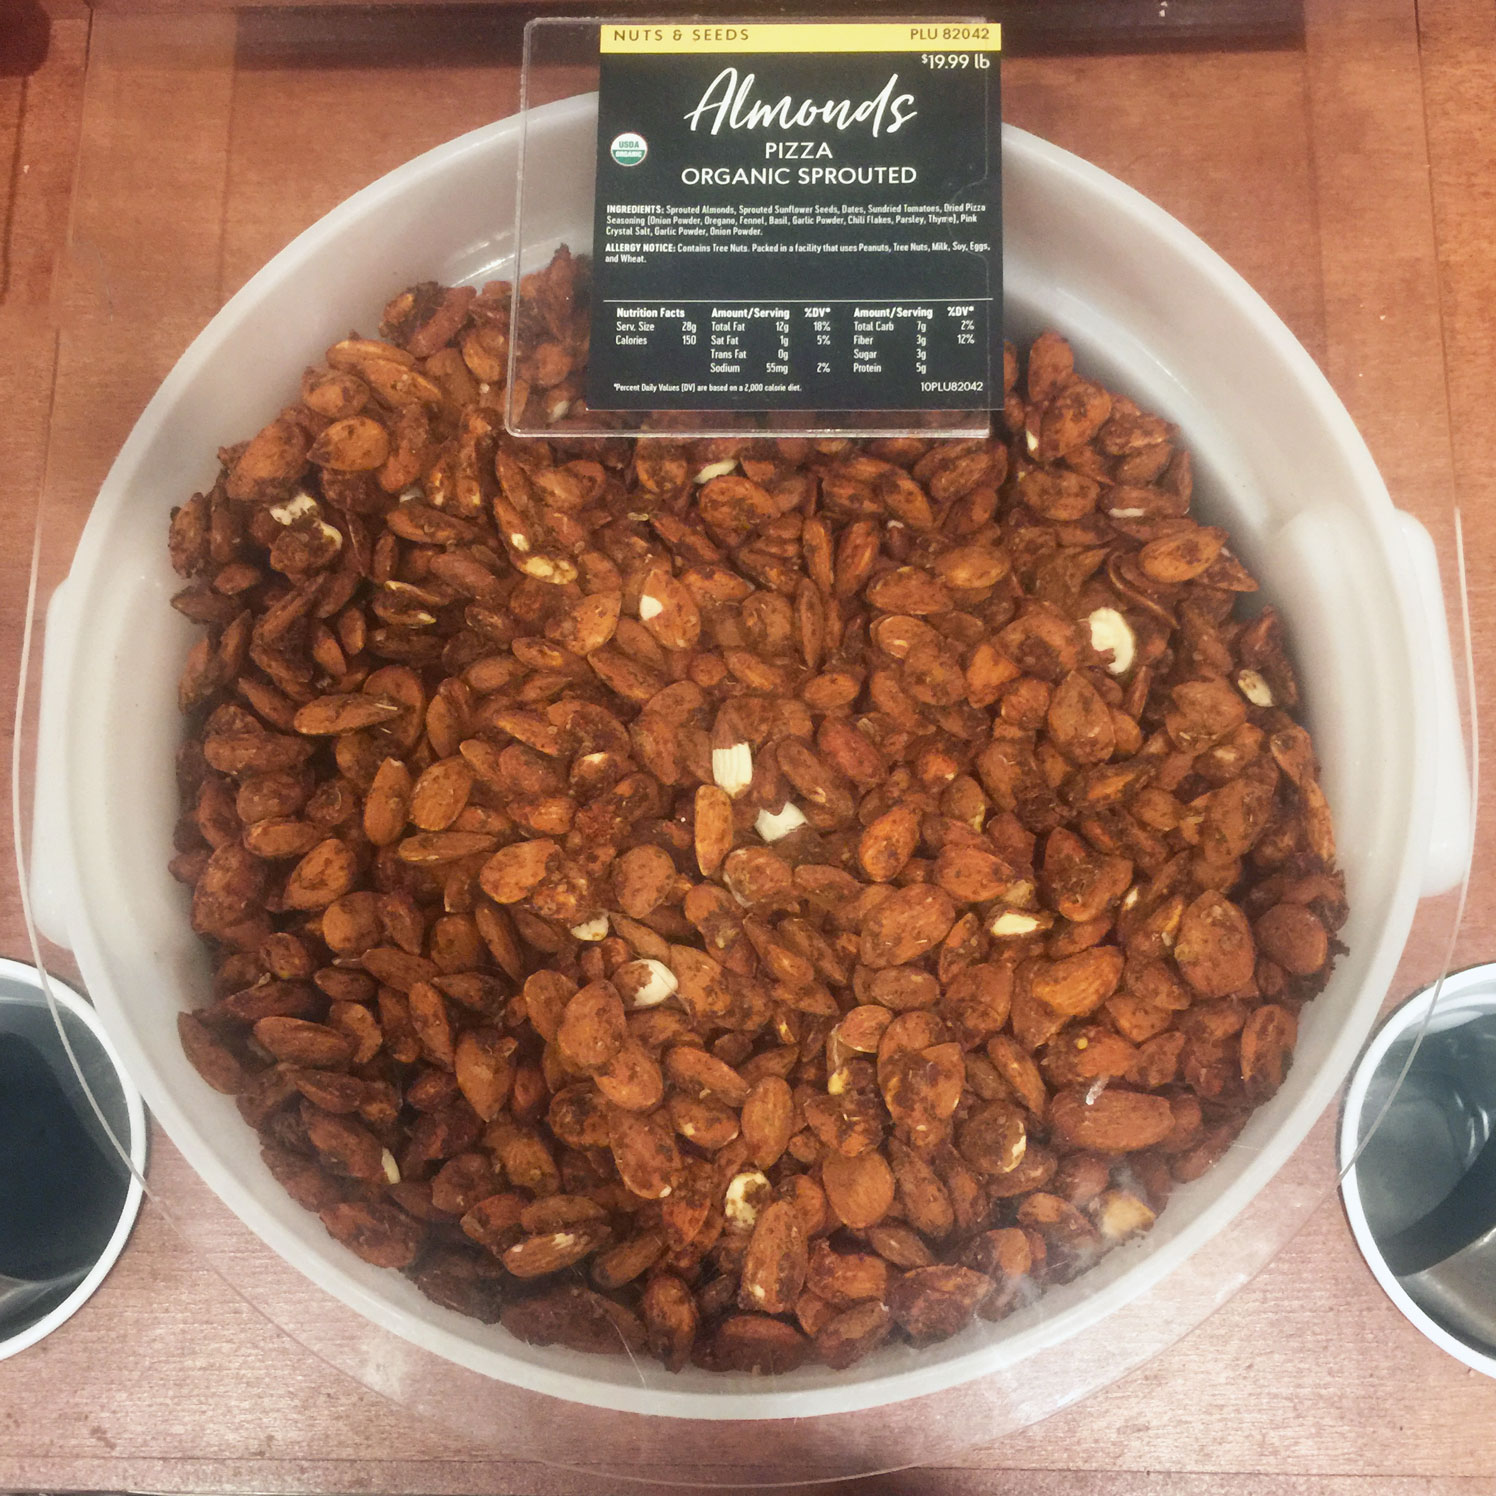 container of Pizza flavored almonds